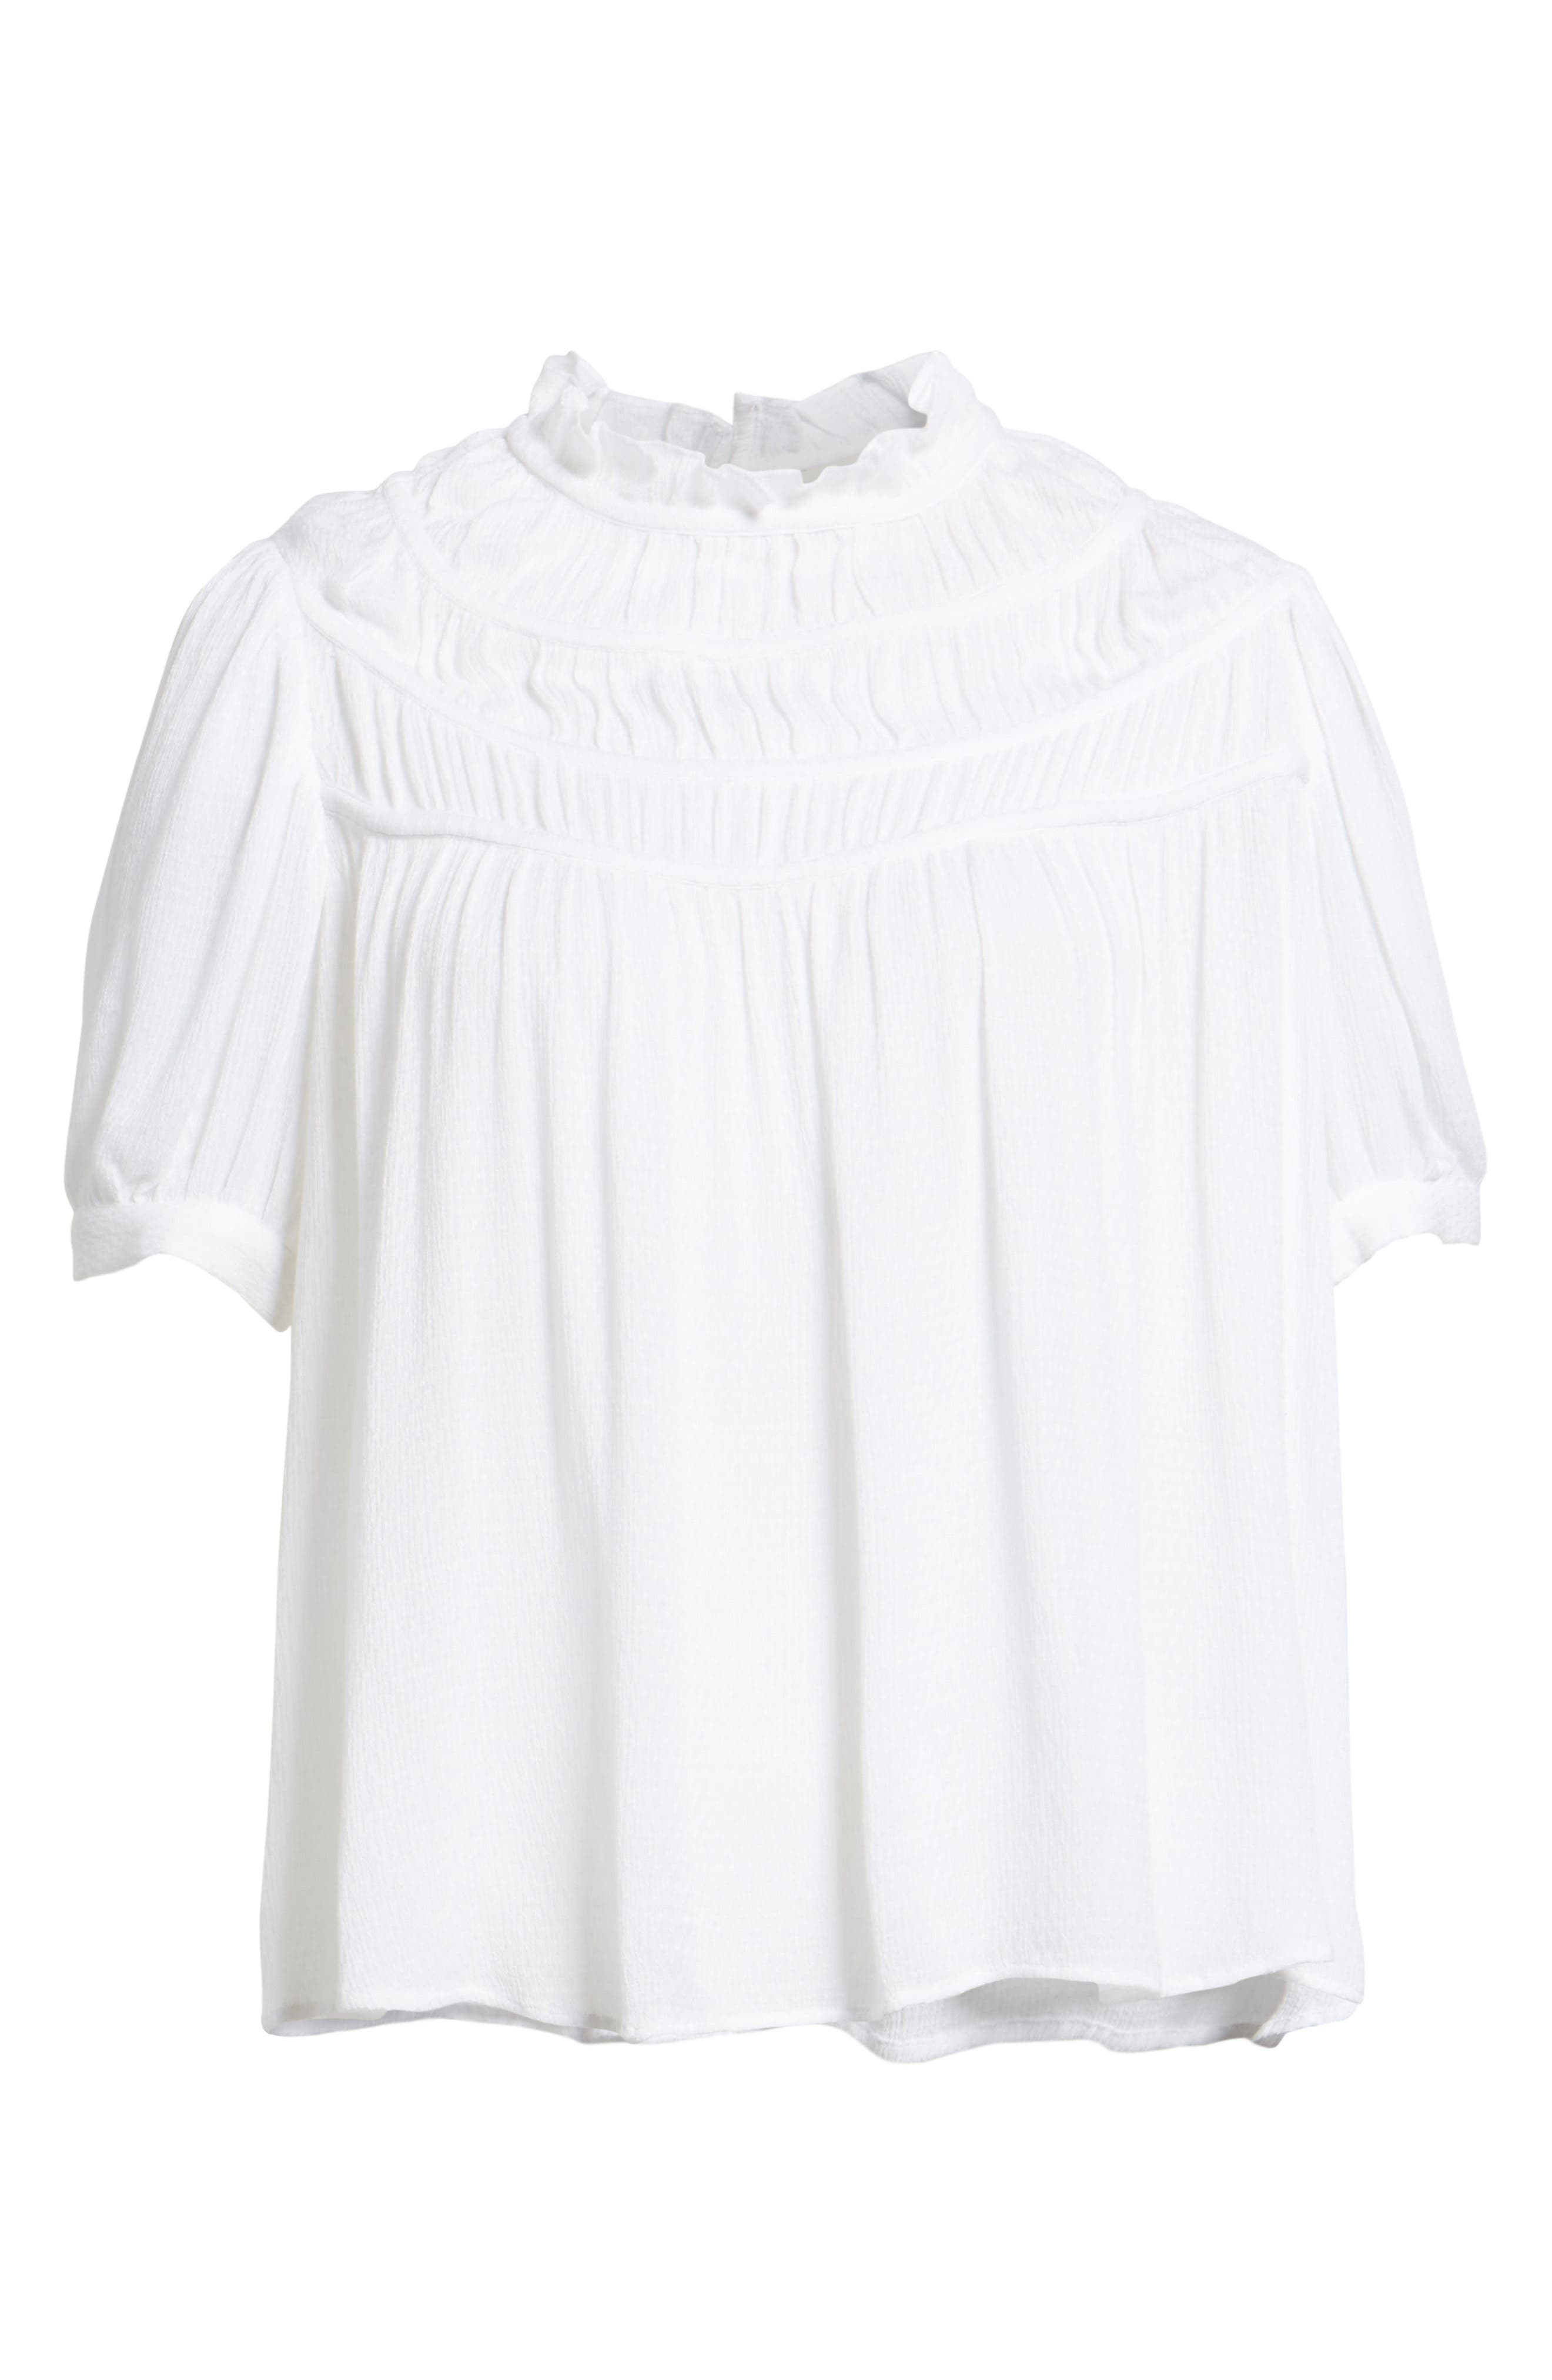 Ruched Puff Sleeve Top,                             Alternate thumbnail 6, color,                             100